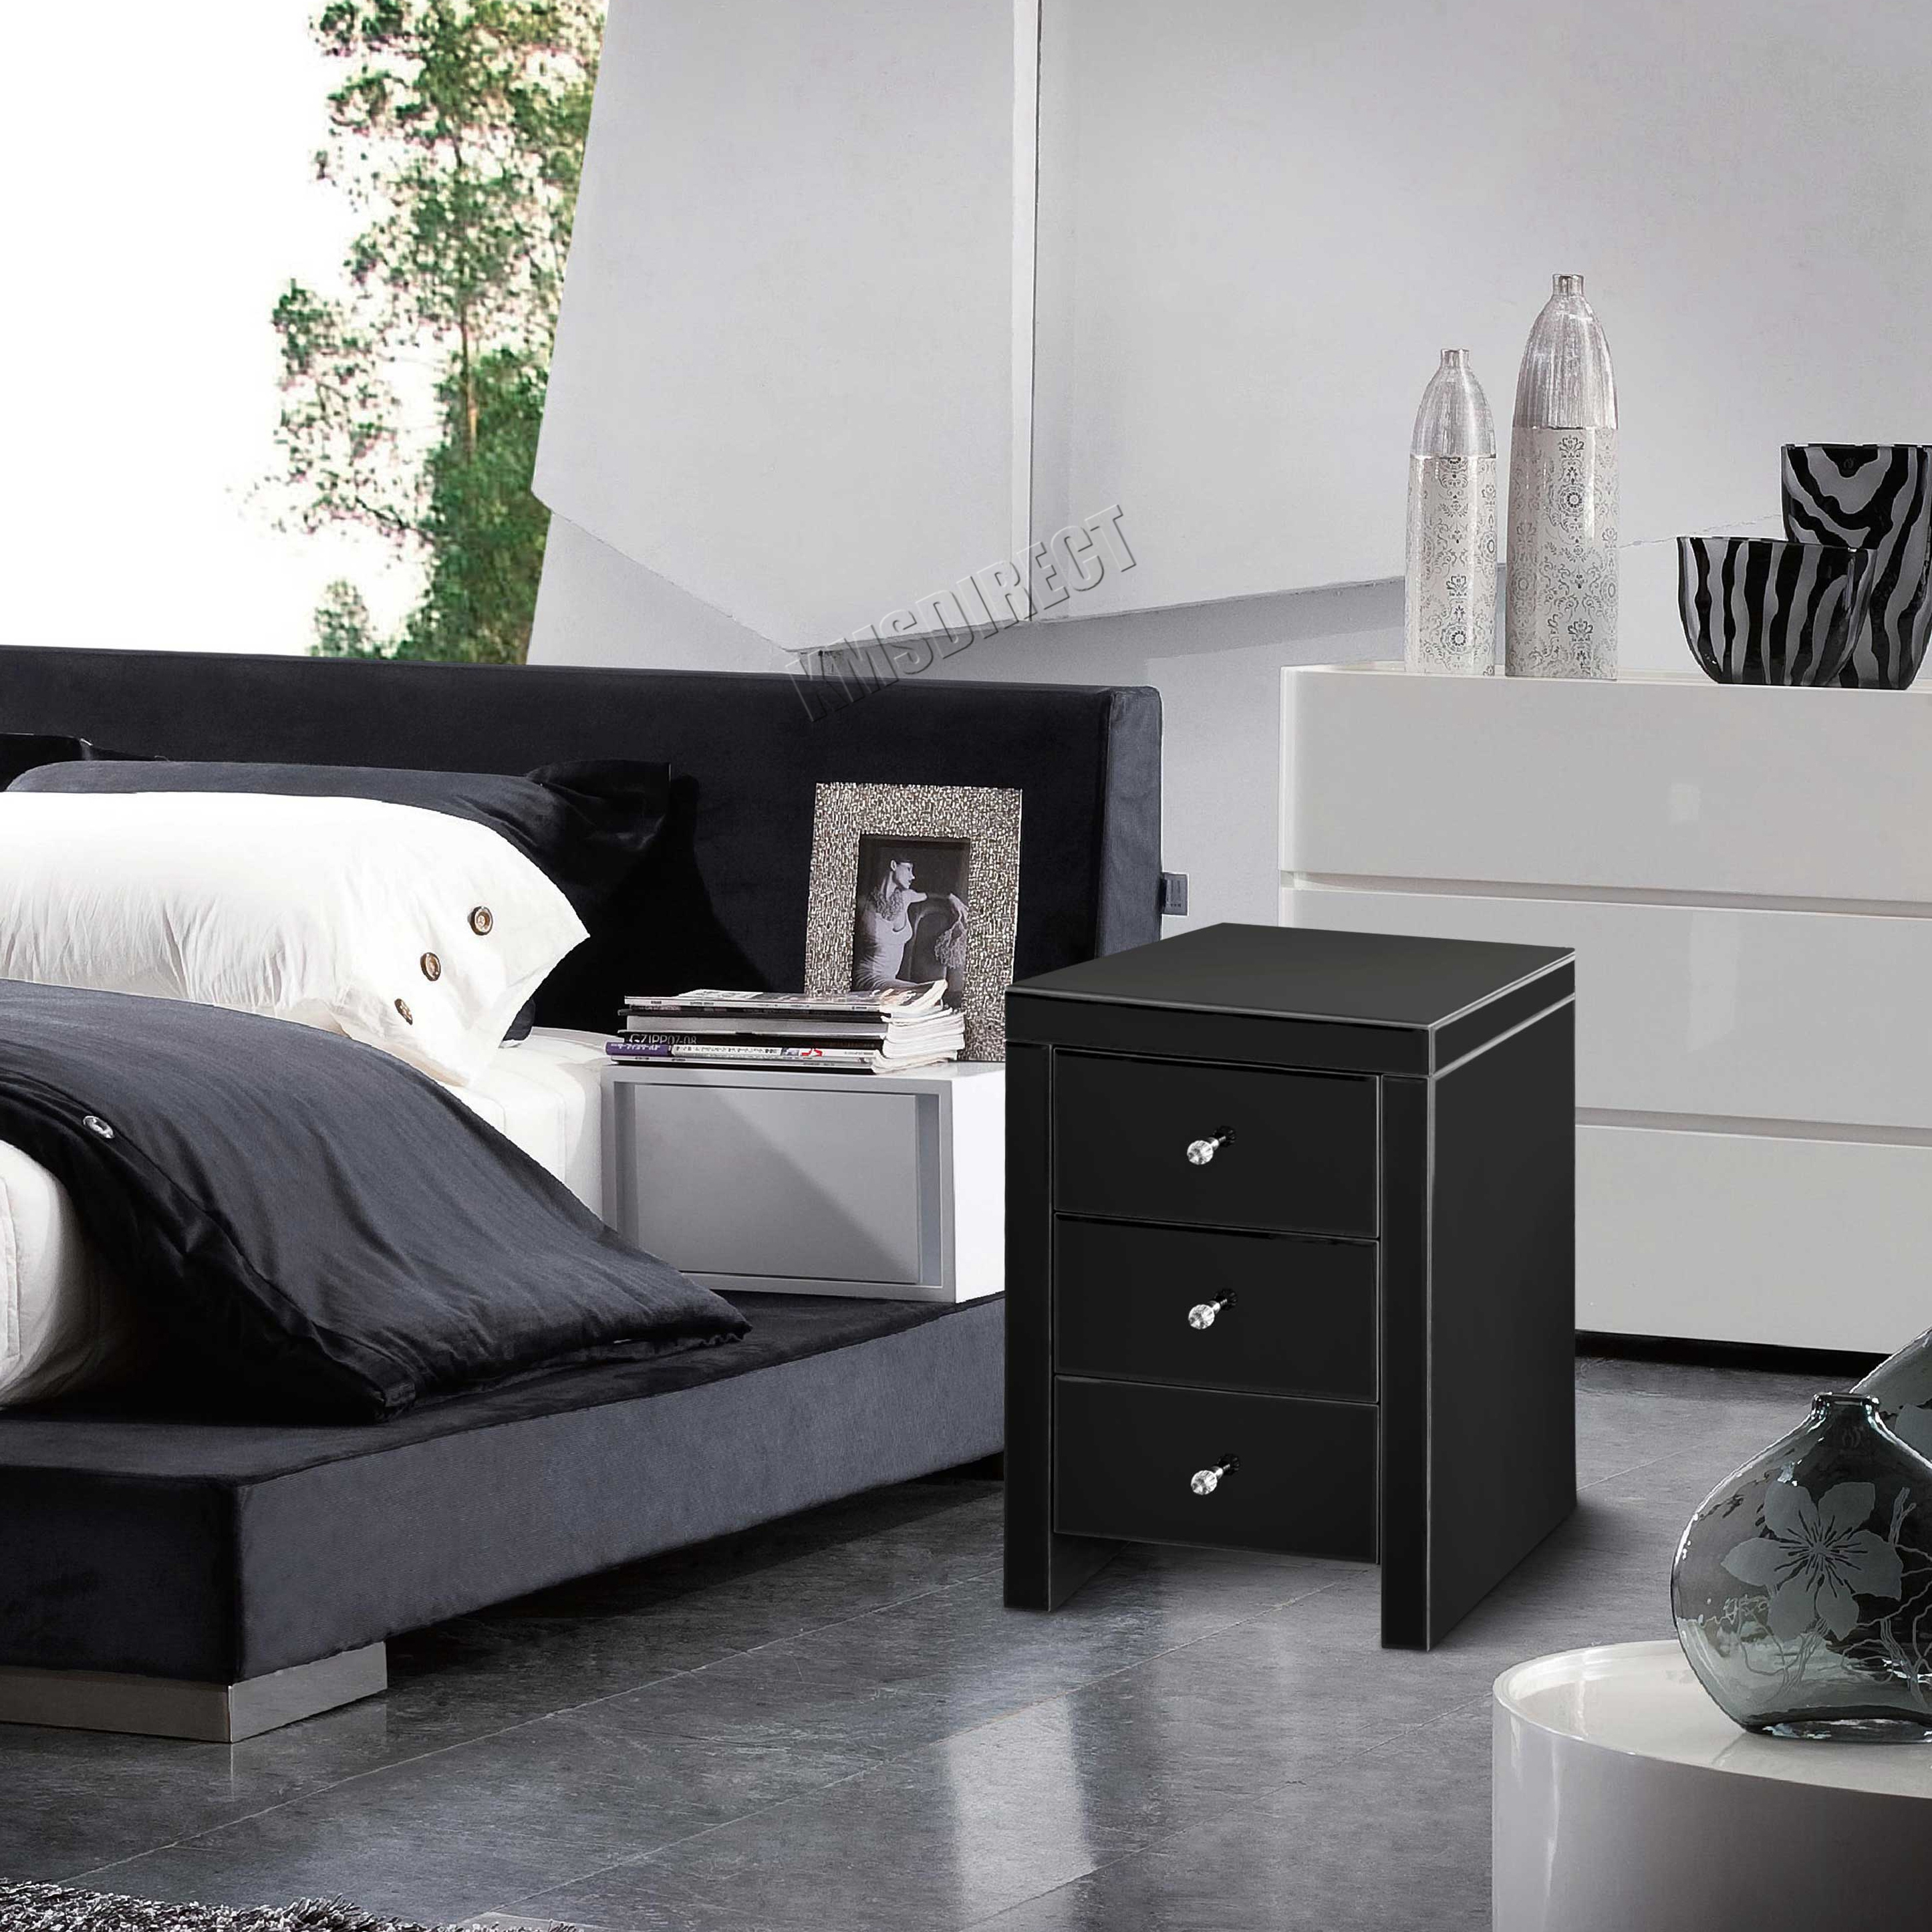 Mirrored Cabinets Bedroom Foxhunter Mirrored Furniture Glass Bedside Cabinet Table With